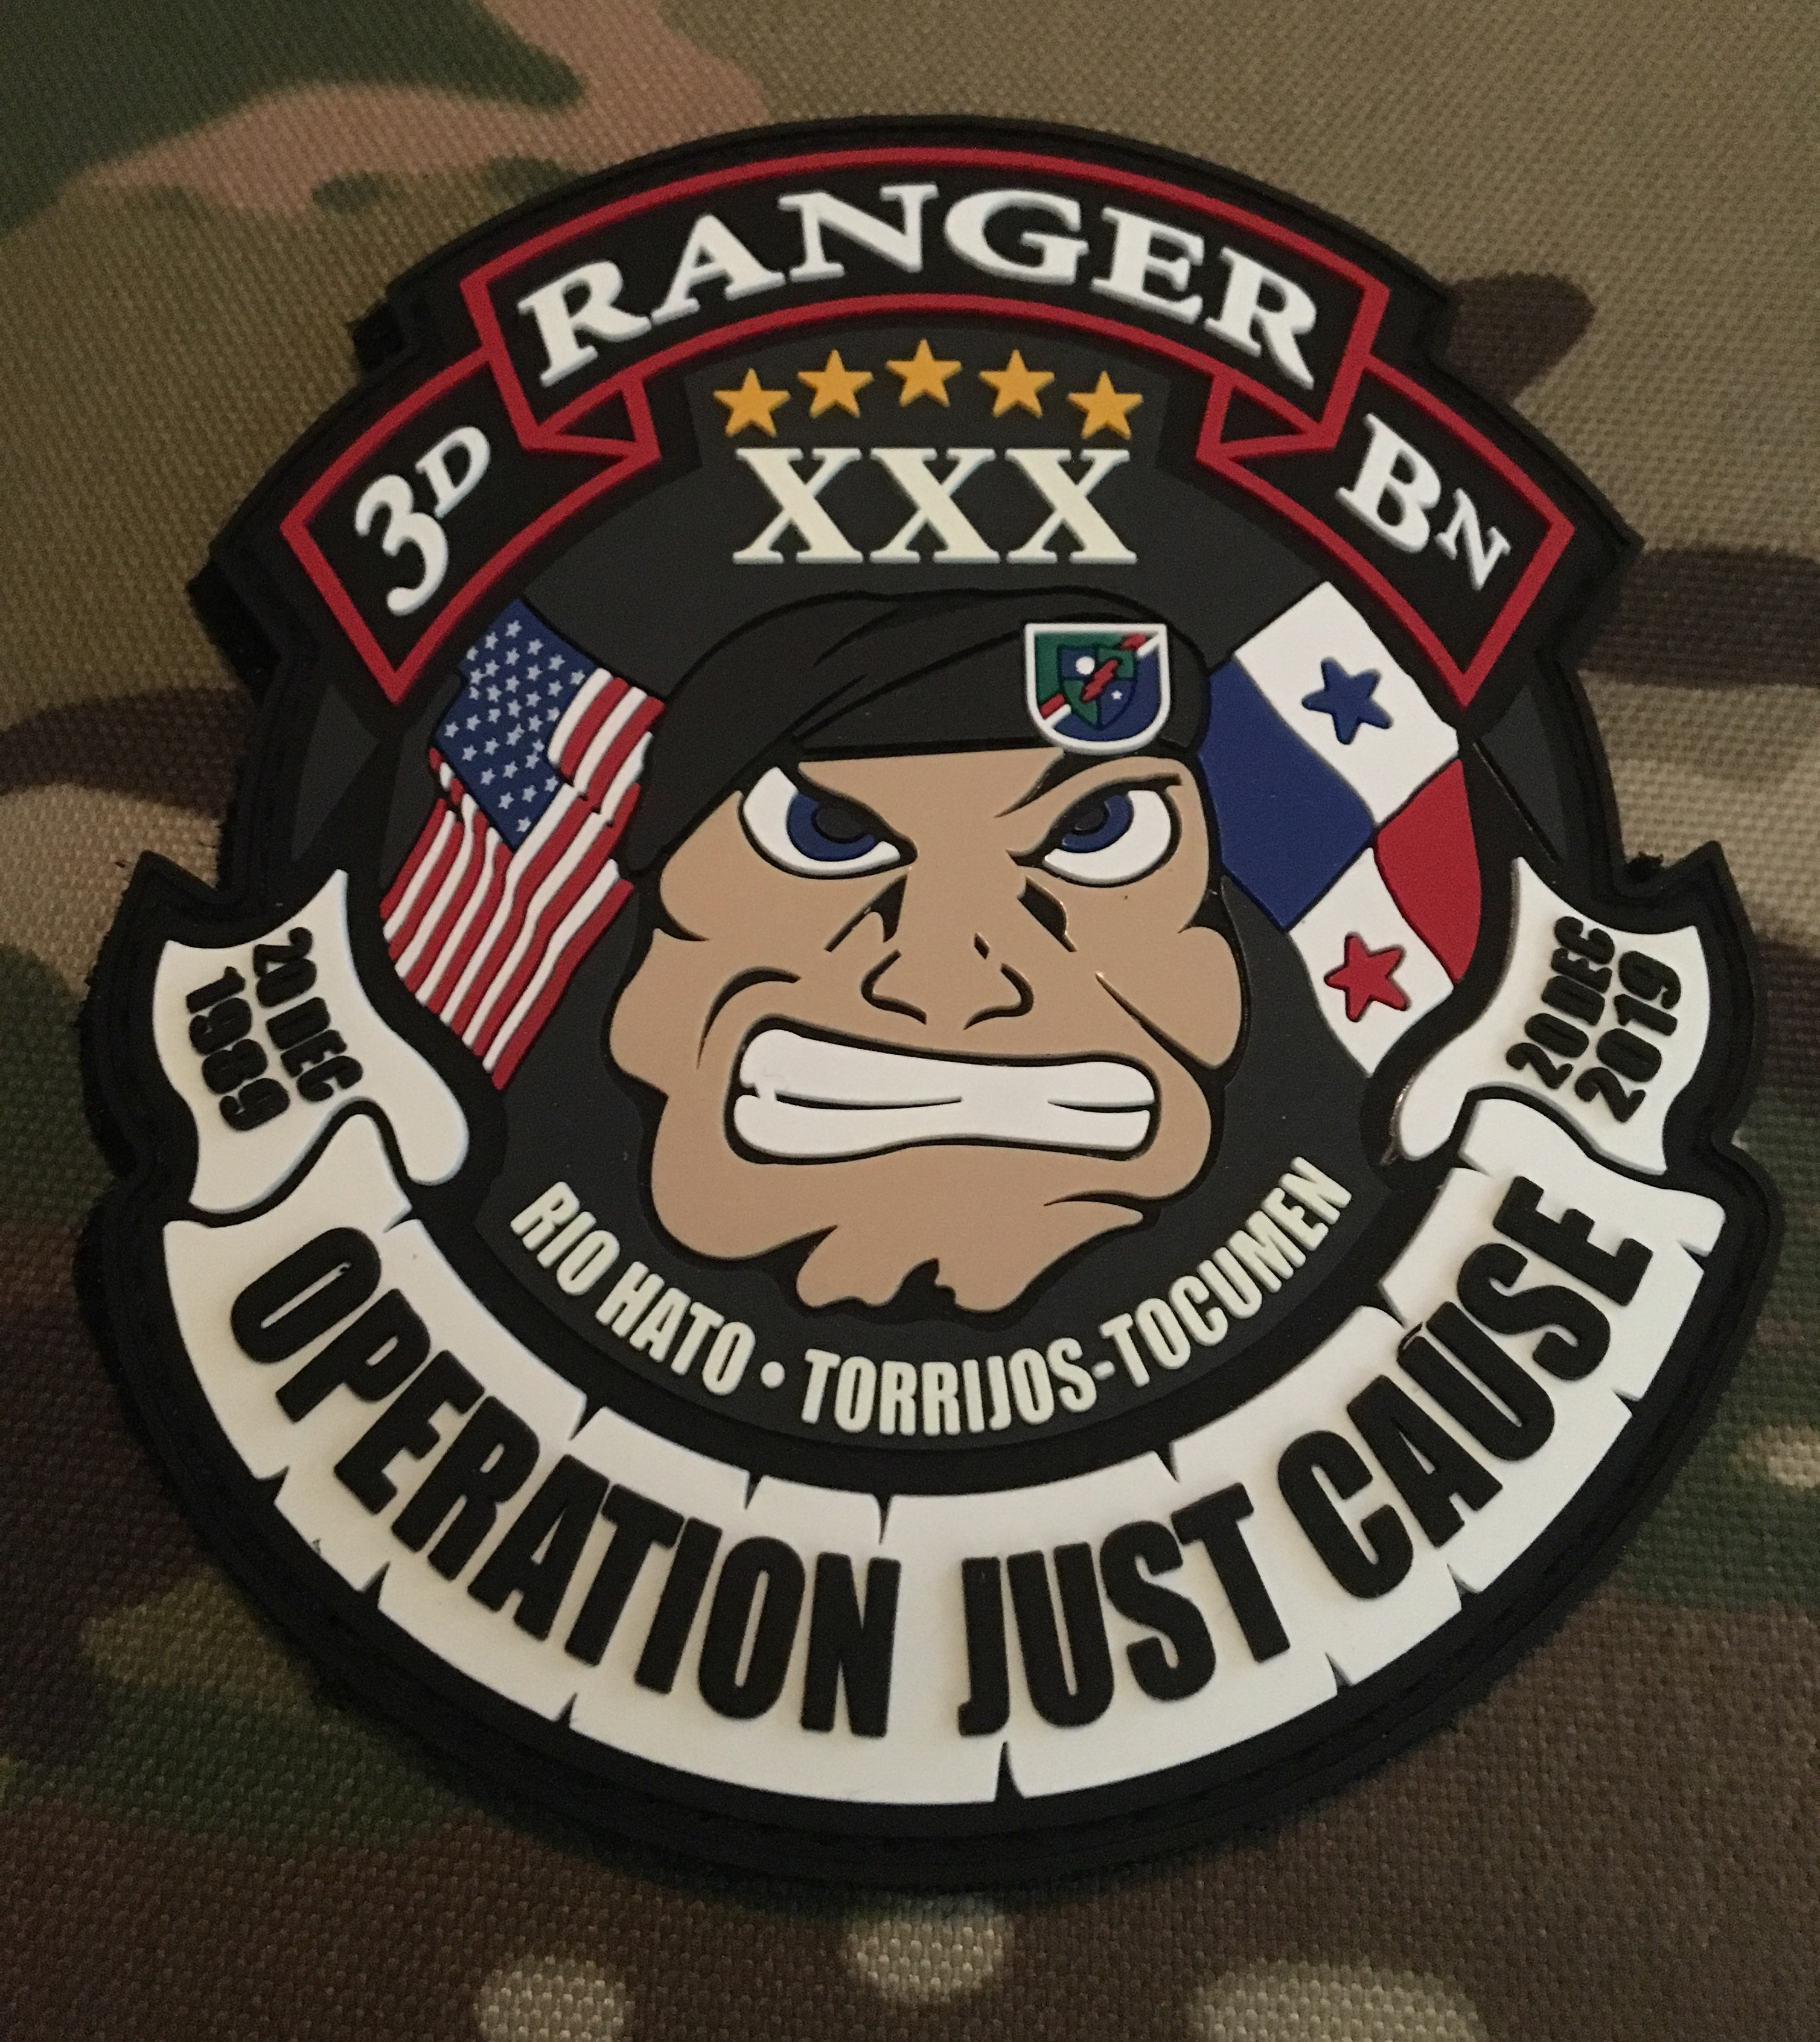 3bn patch